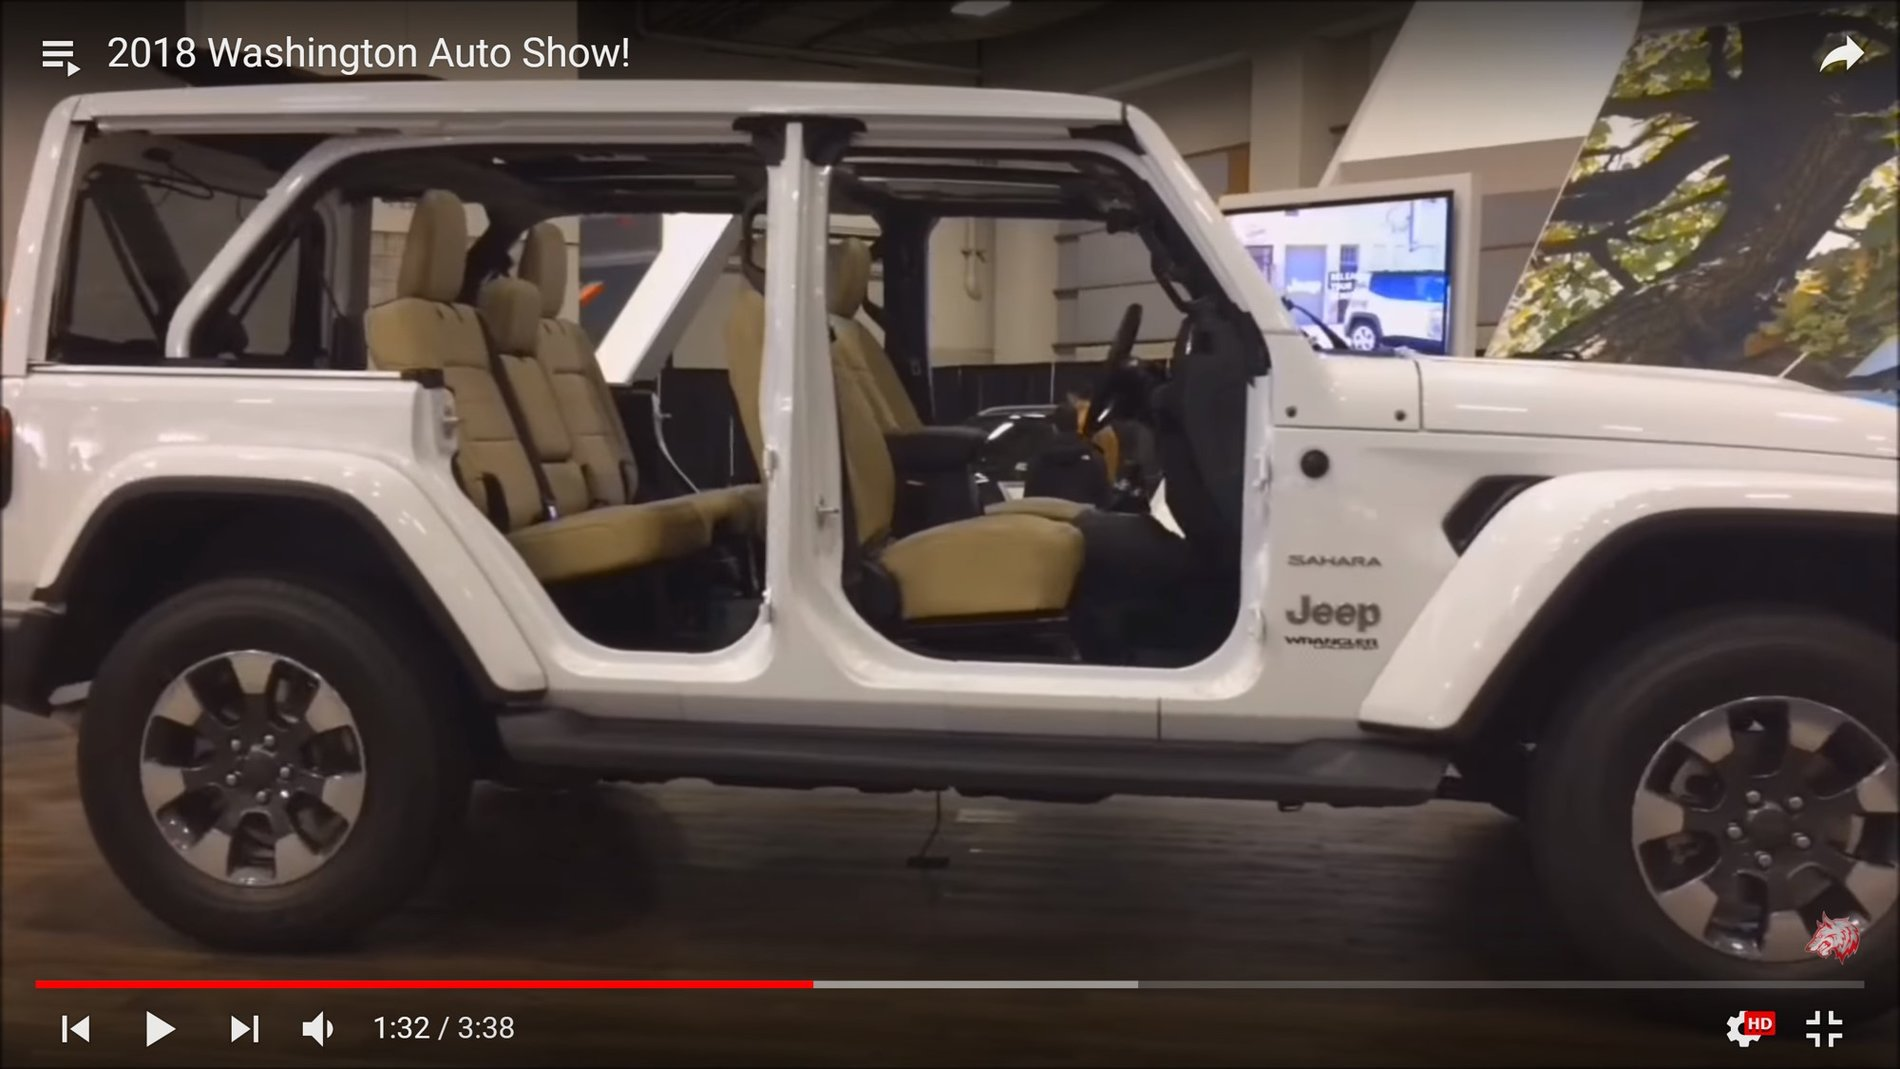 power top doors off.jpg & Sky One-Touch with doors off at Washington Auto Show | 2018+ Jeep ...